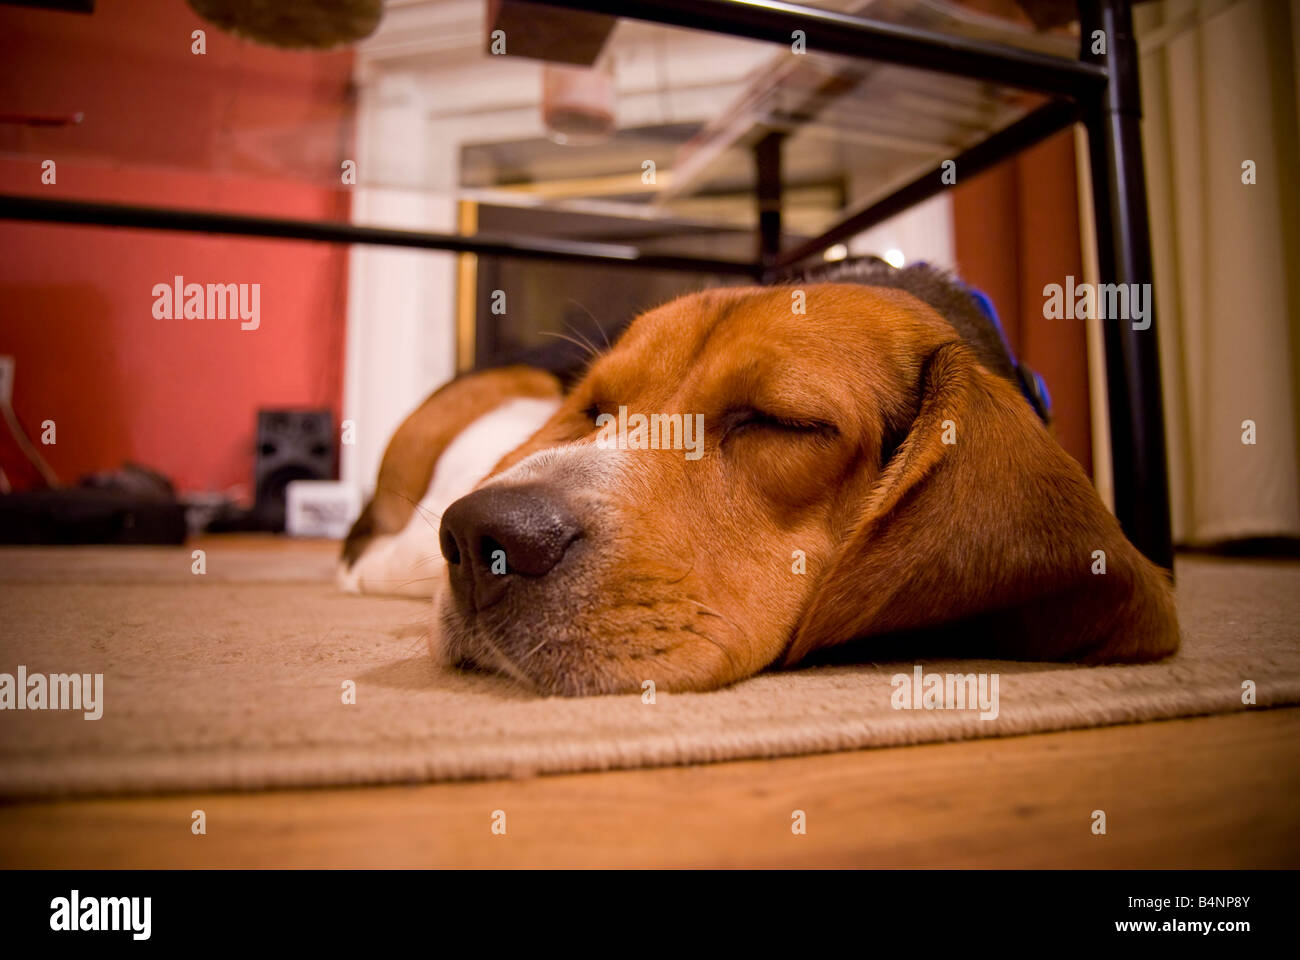 A cute beagle puppy sleeping on the floor in the living room Stock Photo